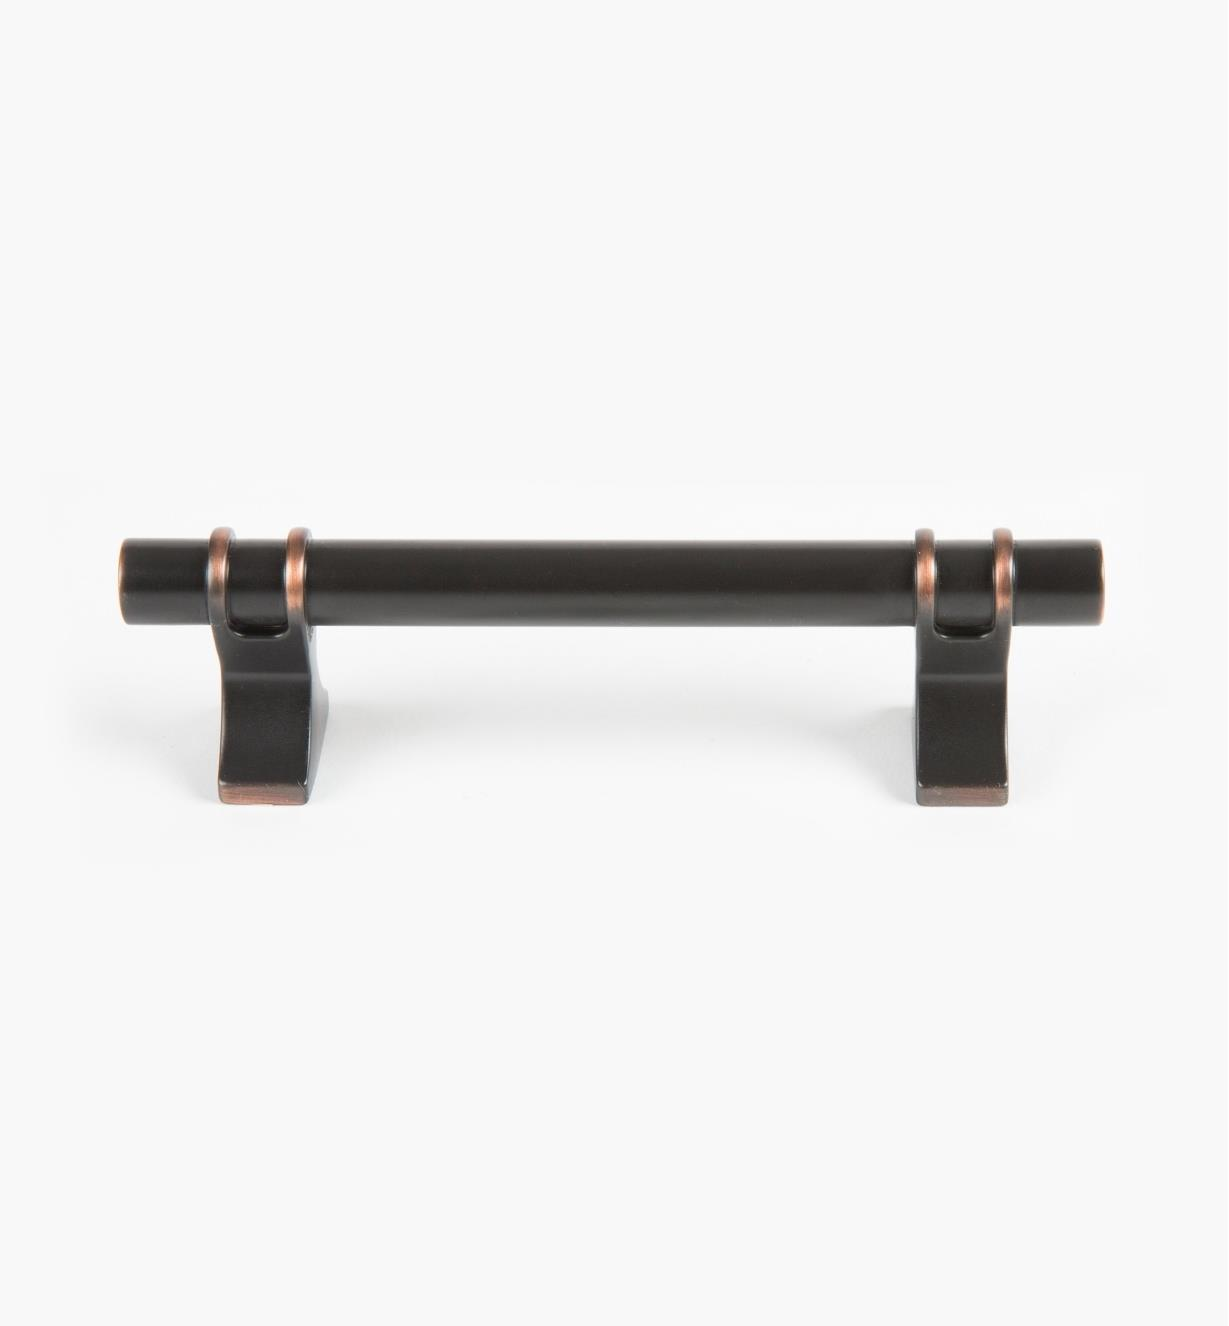 02A1437 - Davenport Oil-Rubbed Bronze 96mm Handle (135mm), each